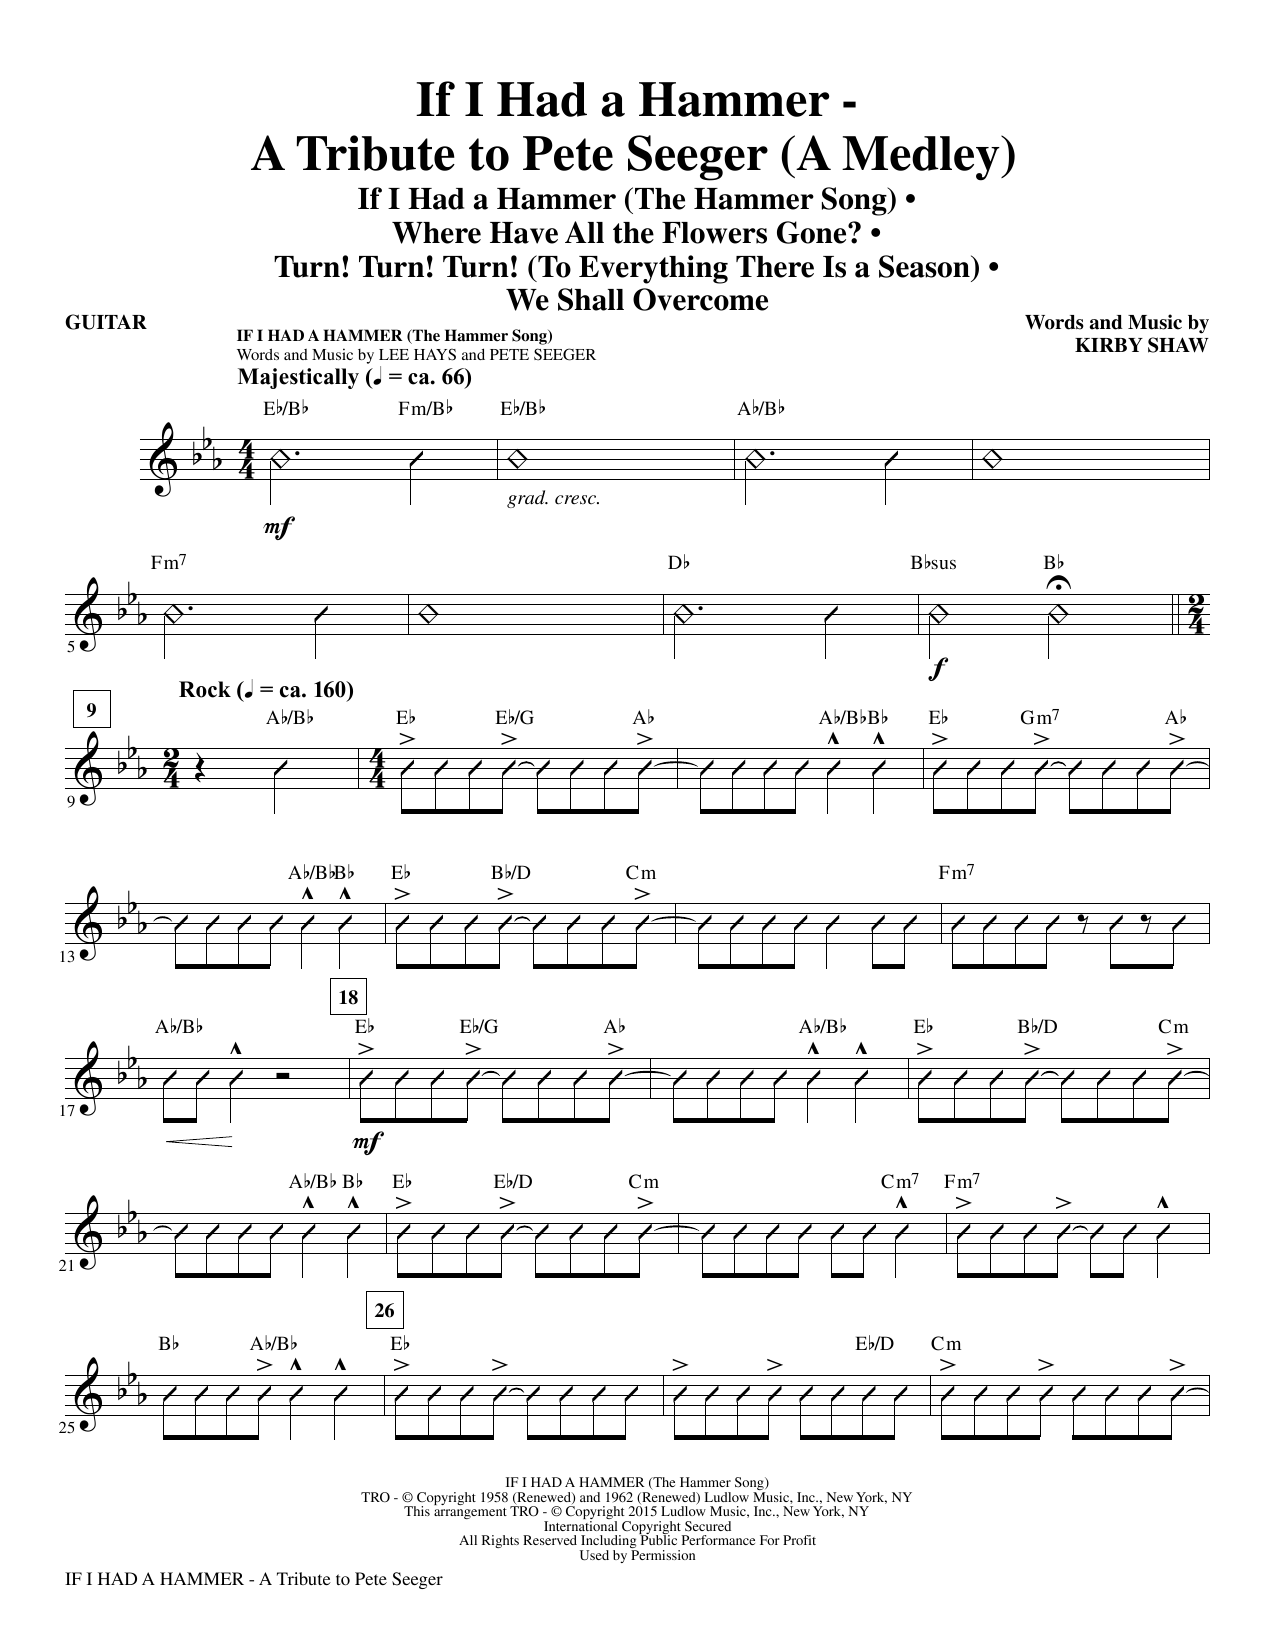 If I Had A Hammer - A Tribute to Pete Seeger - Guitar Sheet Music